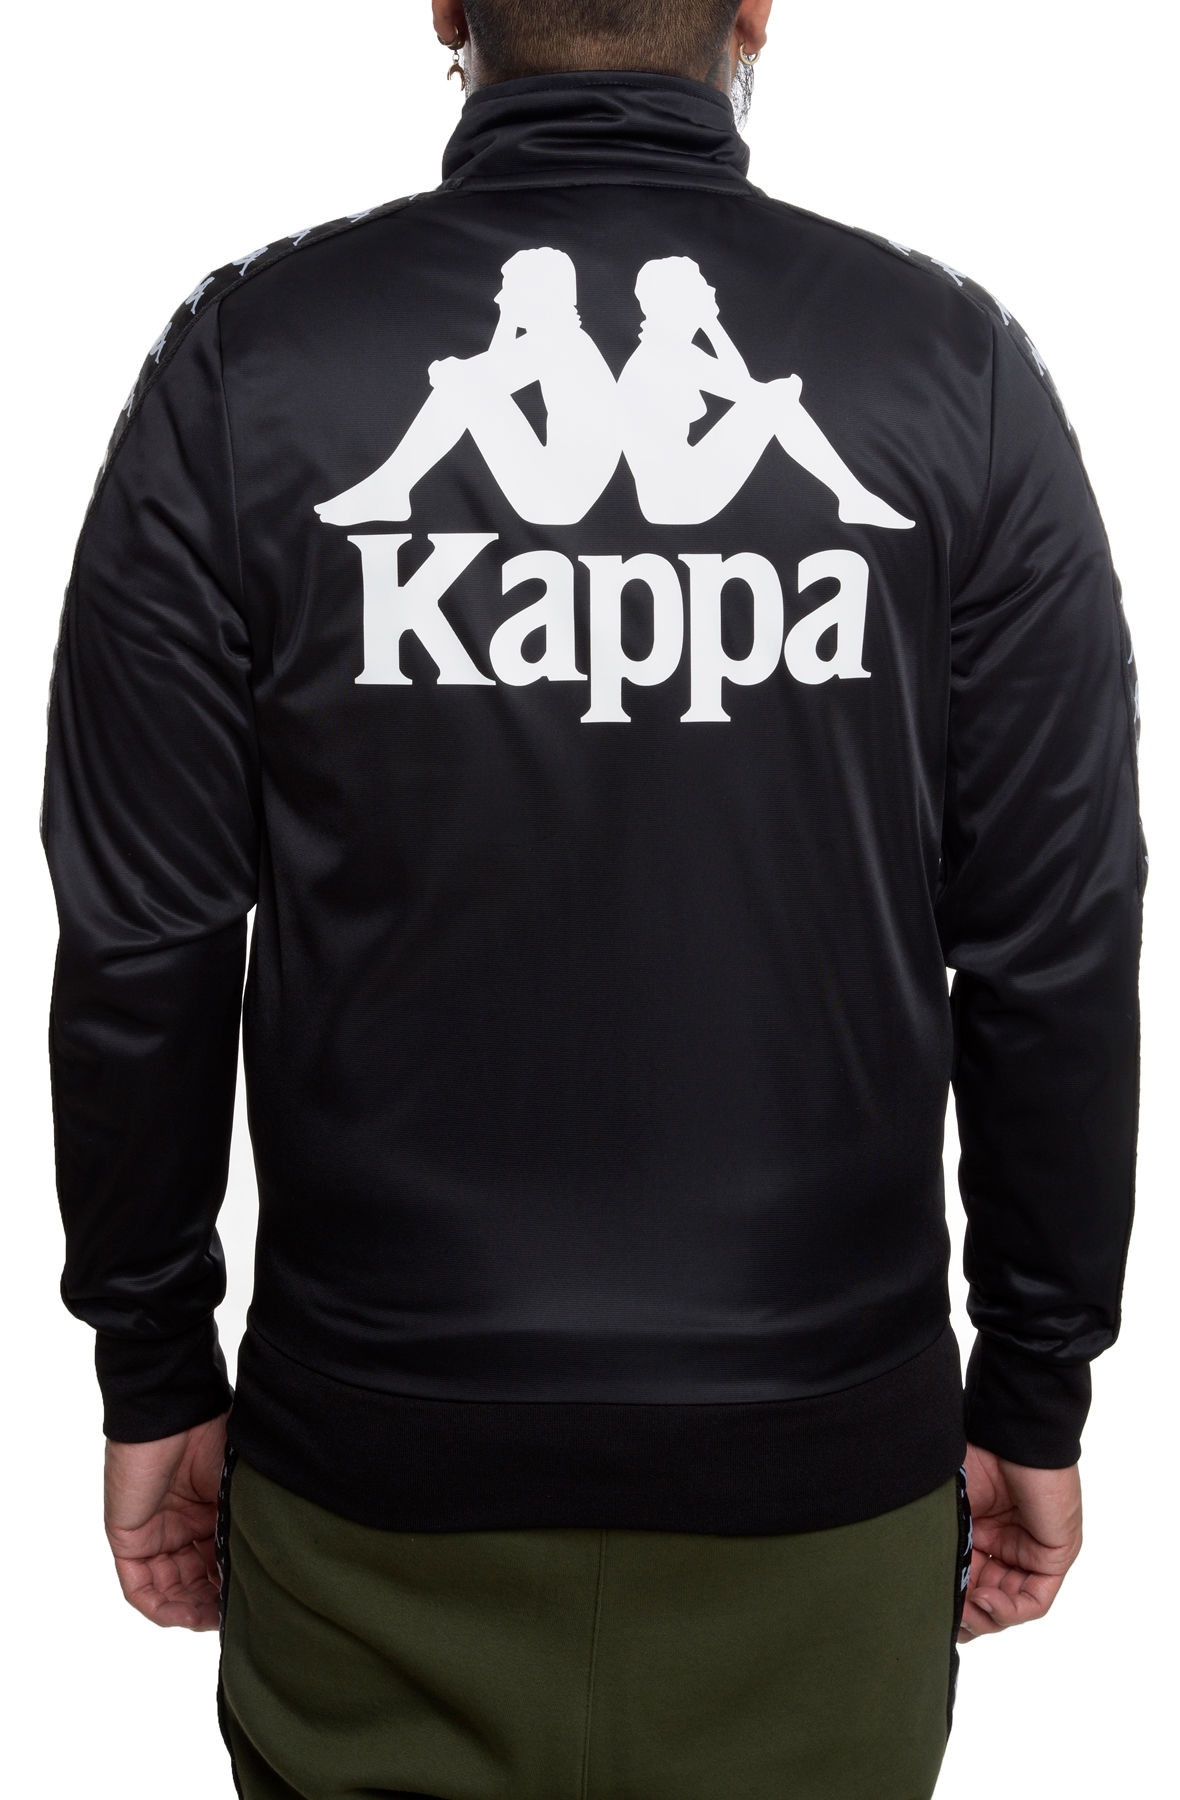 Image of The Kappa Authentic Batrack Track Jacket In Black and White?